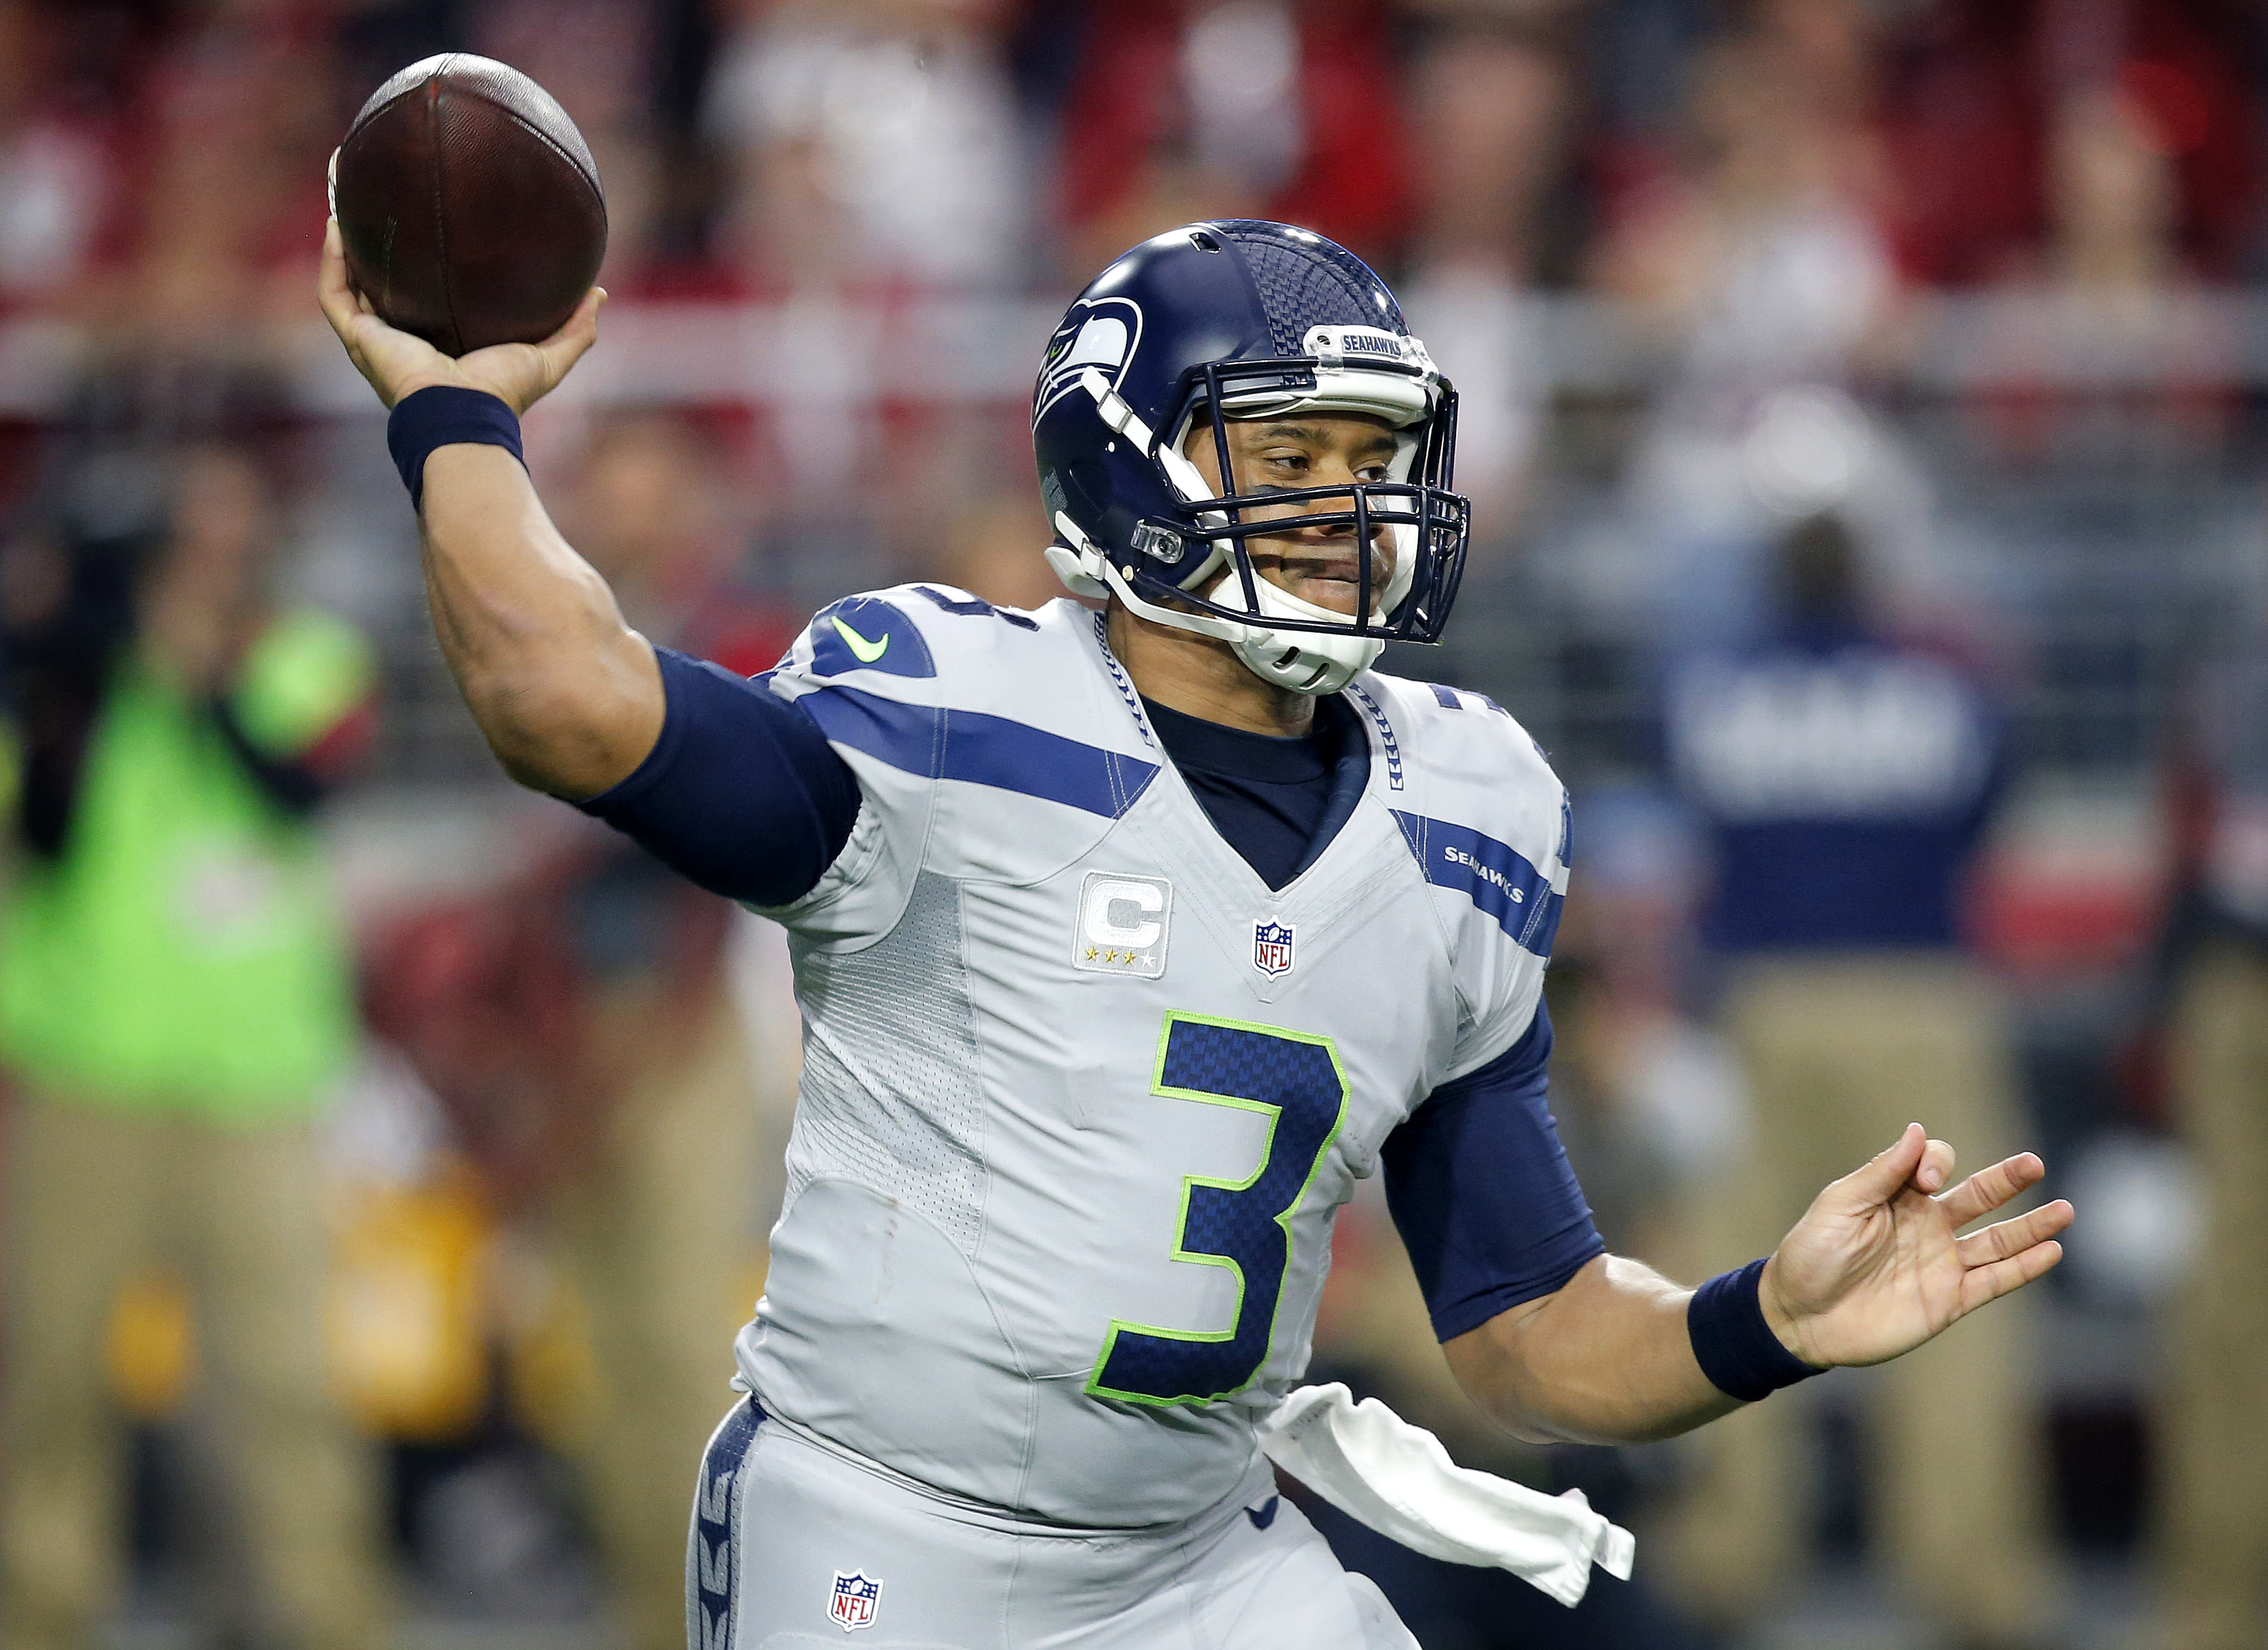 FILE - In this Jan. 3, 2016, file photo, Seattle Seahawks quarterback Russell Wilson (3) throws against the Arizona Cardinals during the first half of an NFL football game in Glendale, Ariz. Invited back to Wisconsin to deliver a graduation address on Sun